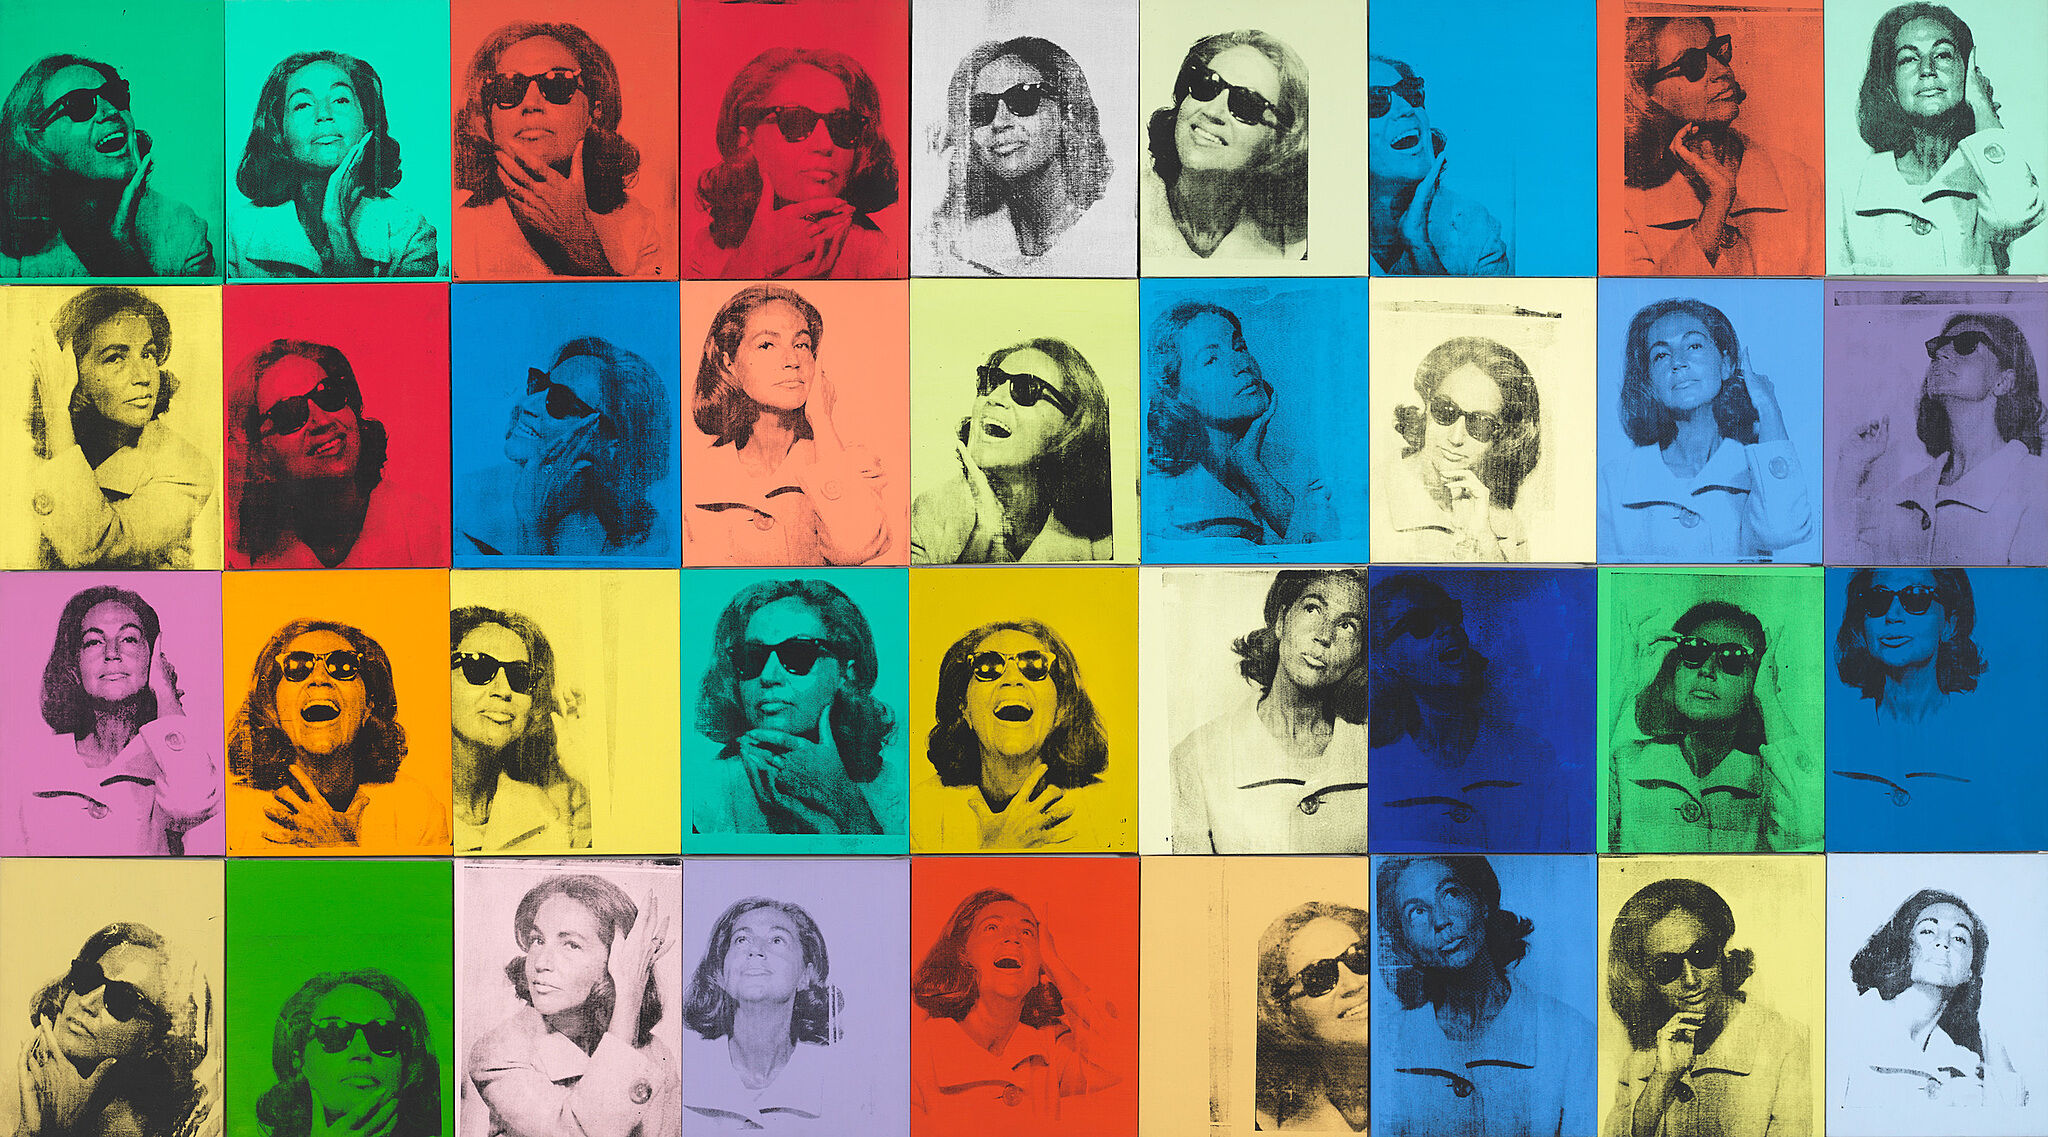 Artwork by Andy Warhol.